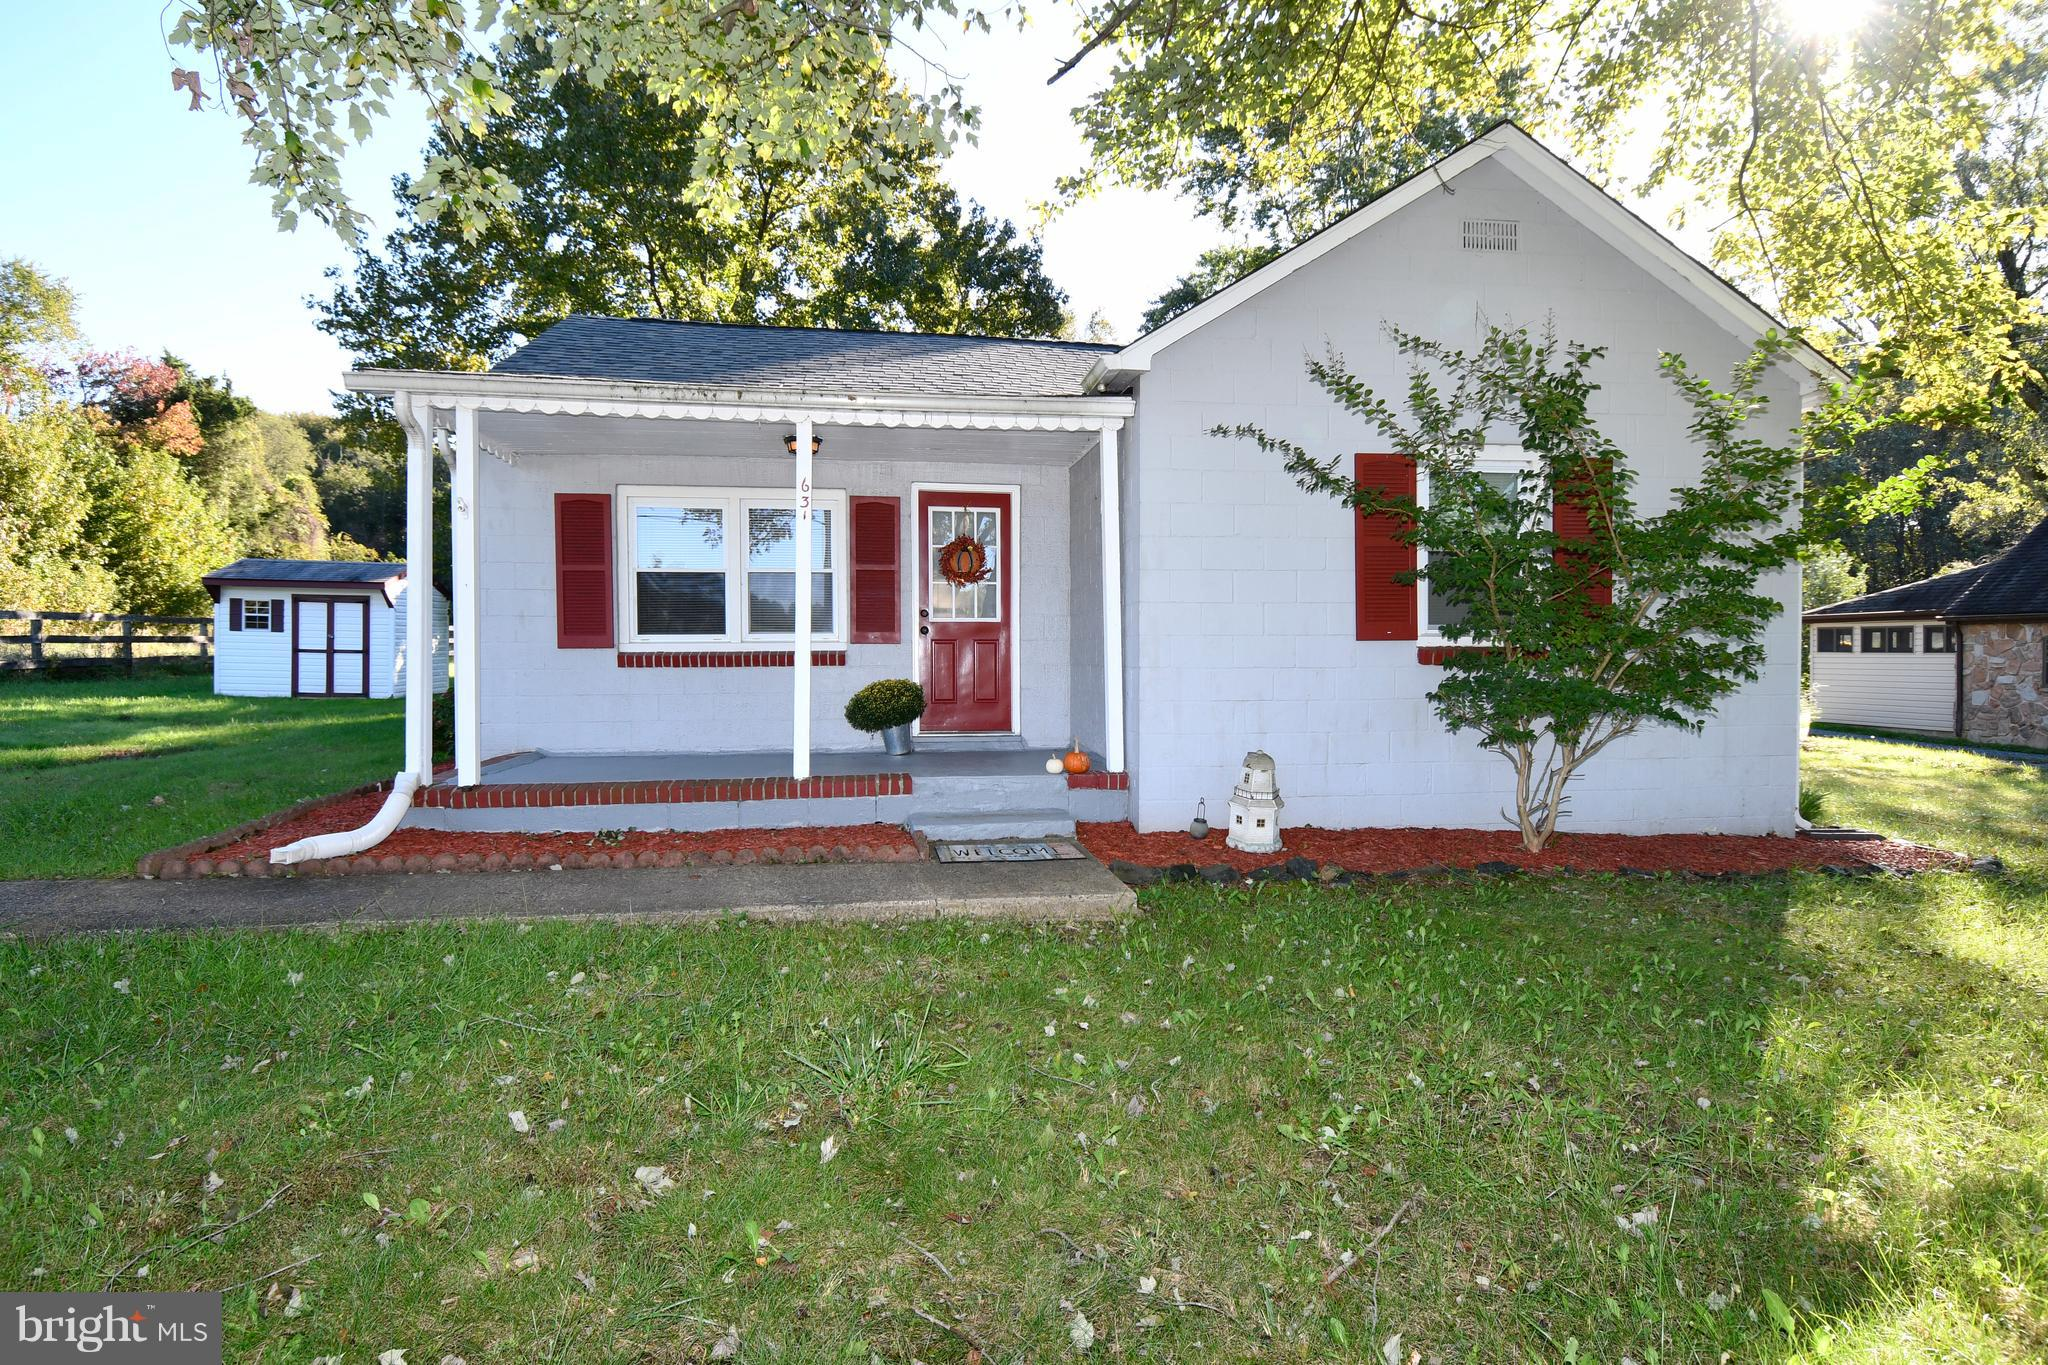 SINGLE FAMILY HOME RANCHER BUILT IN 1955 SITTING ON  0.99 ACRE WITH A COMFORTABLE 933 SQ. FEET OF LI